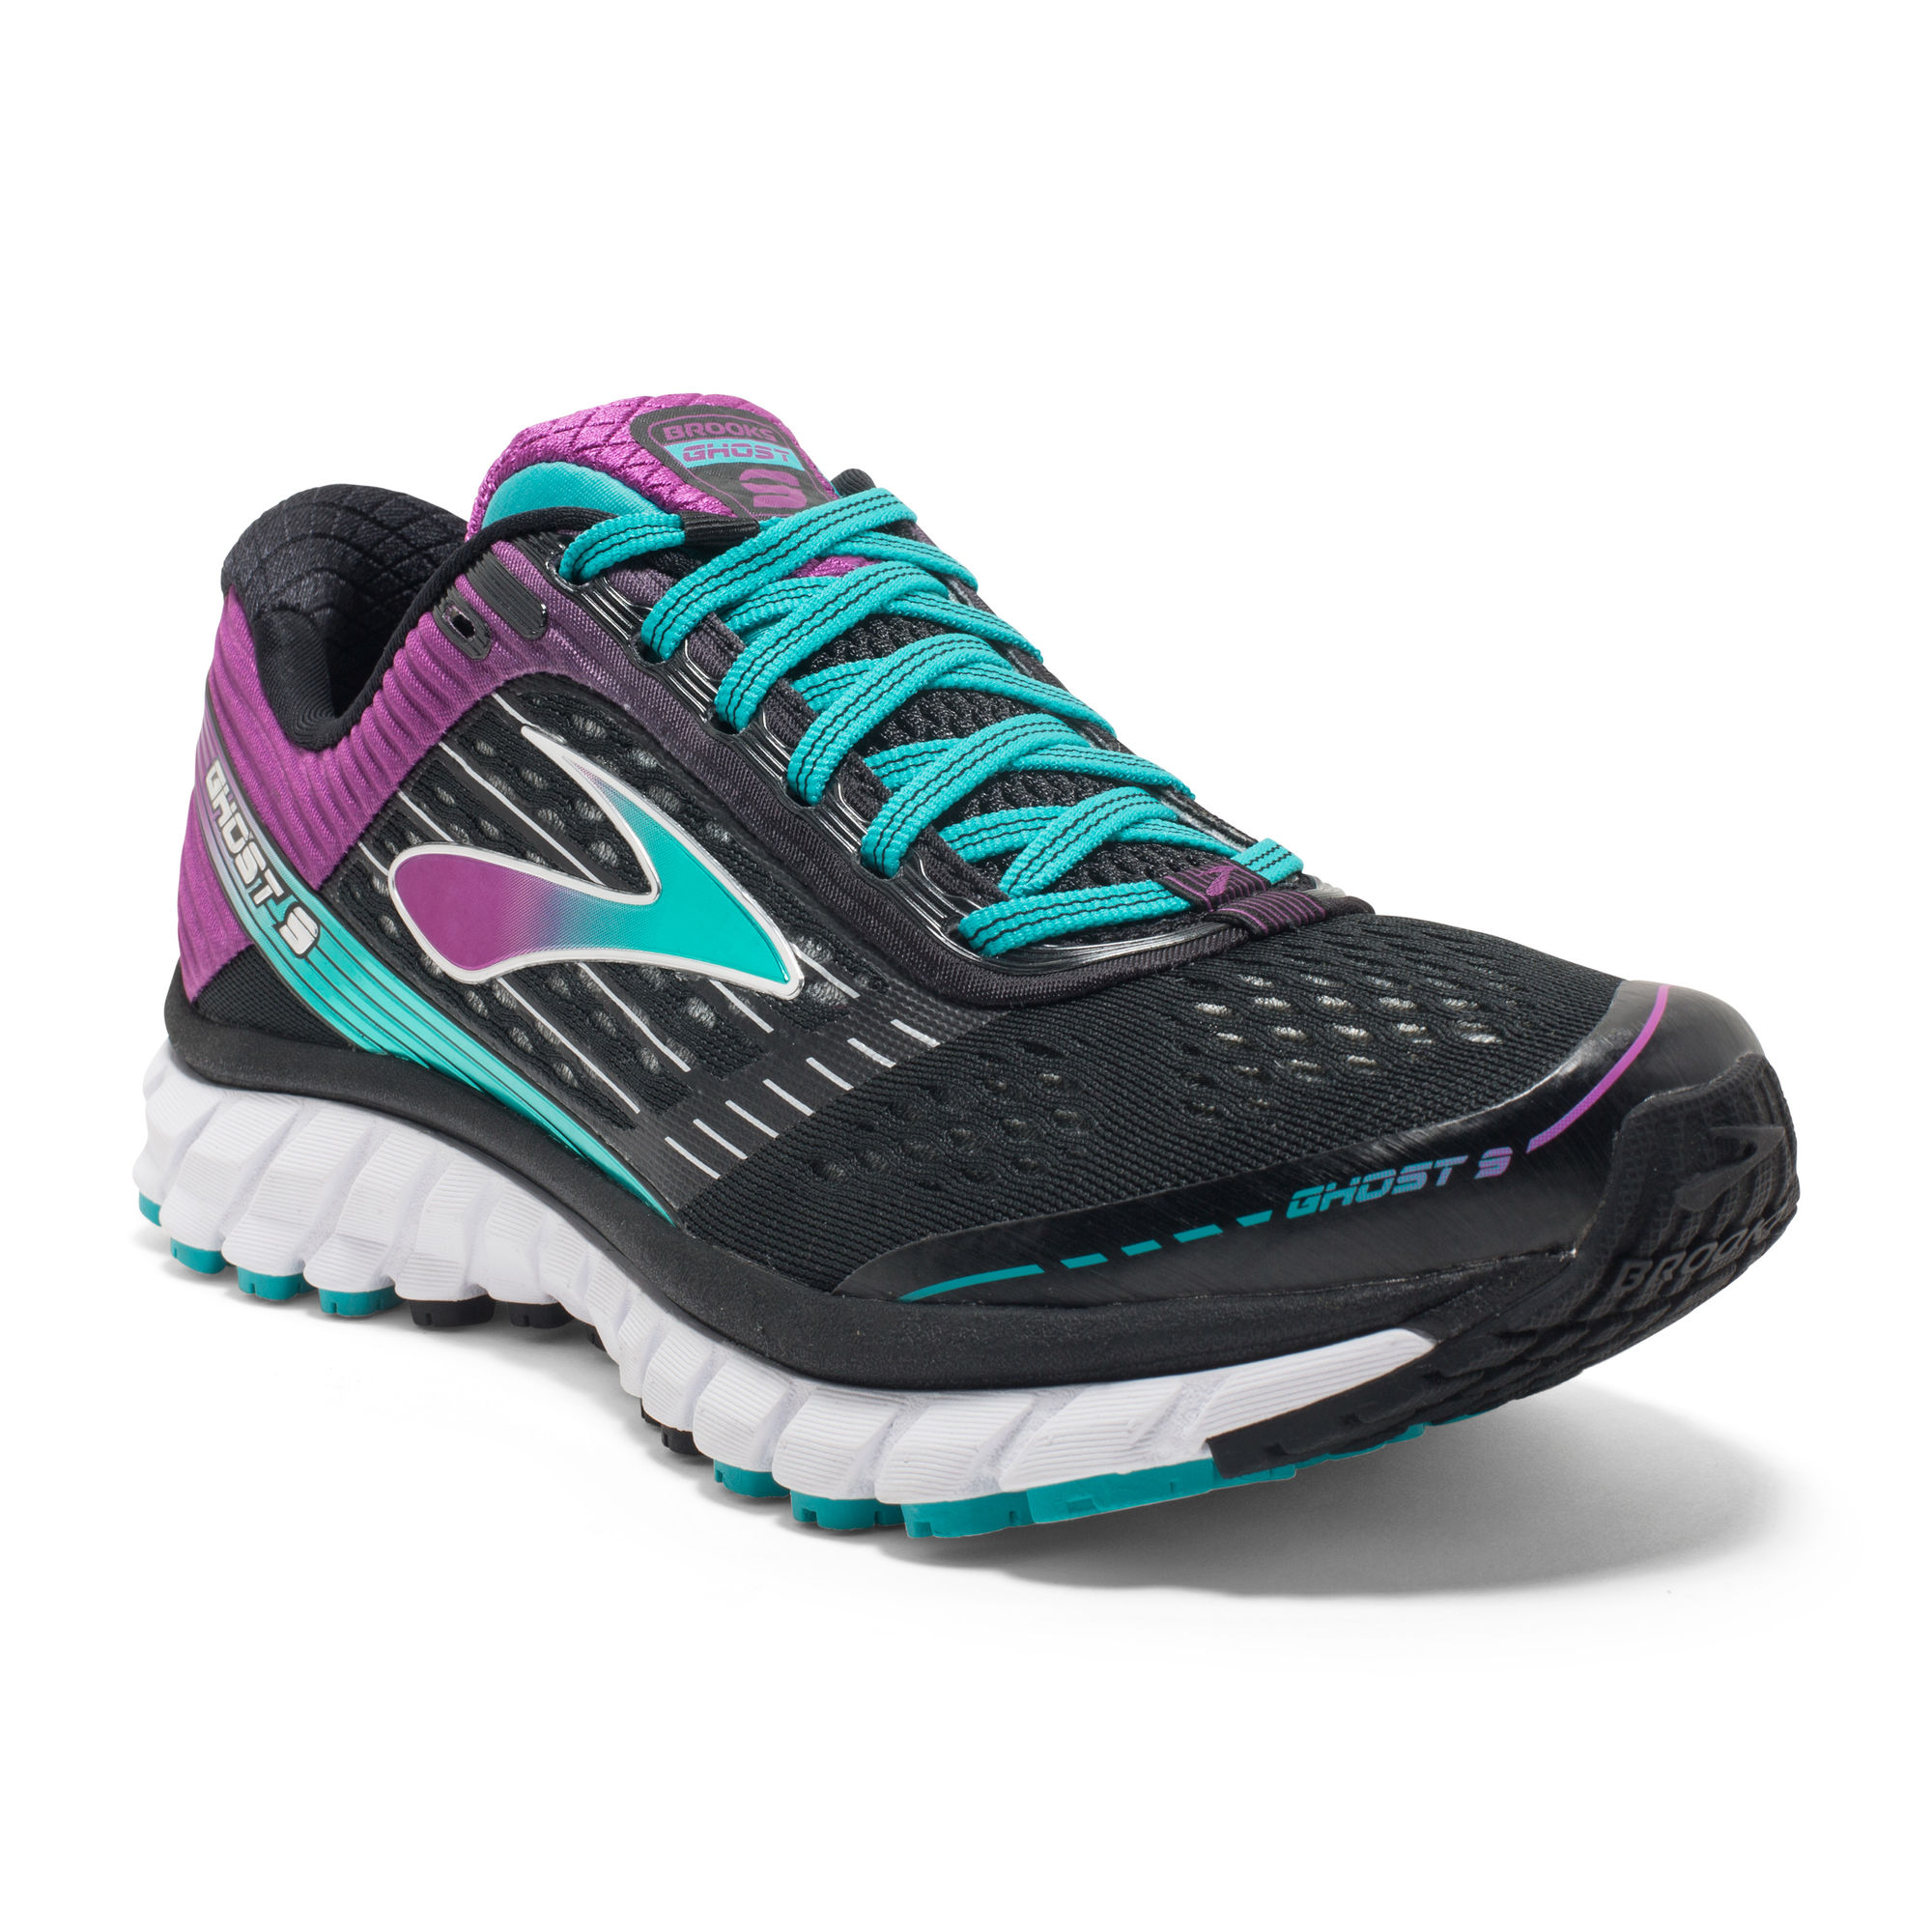 Brooks Lady Ghost 9 in Black/Sparkling Grape